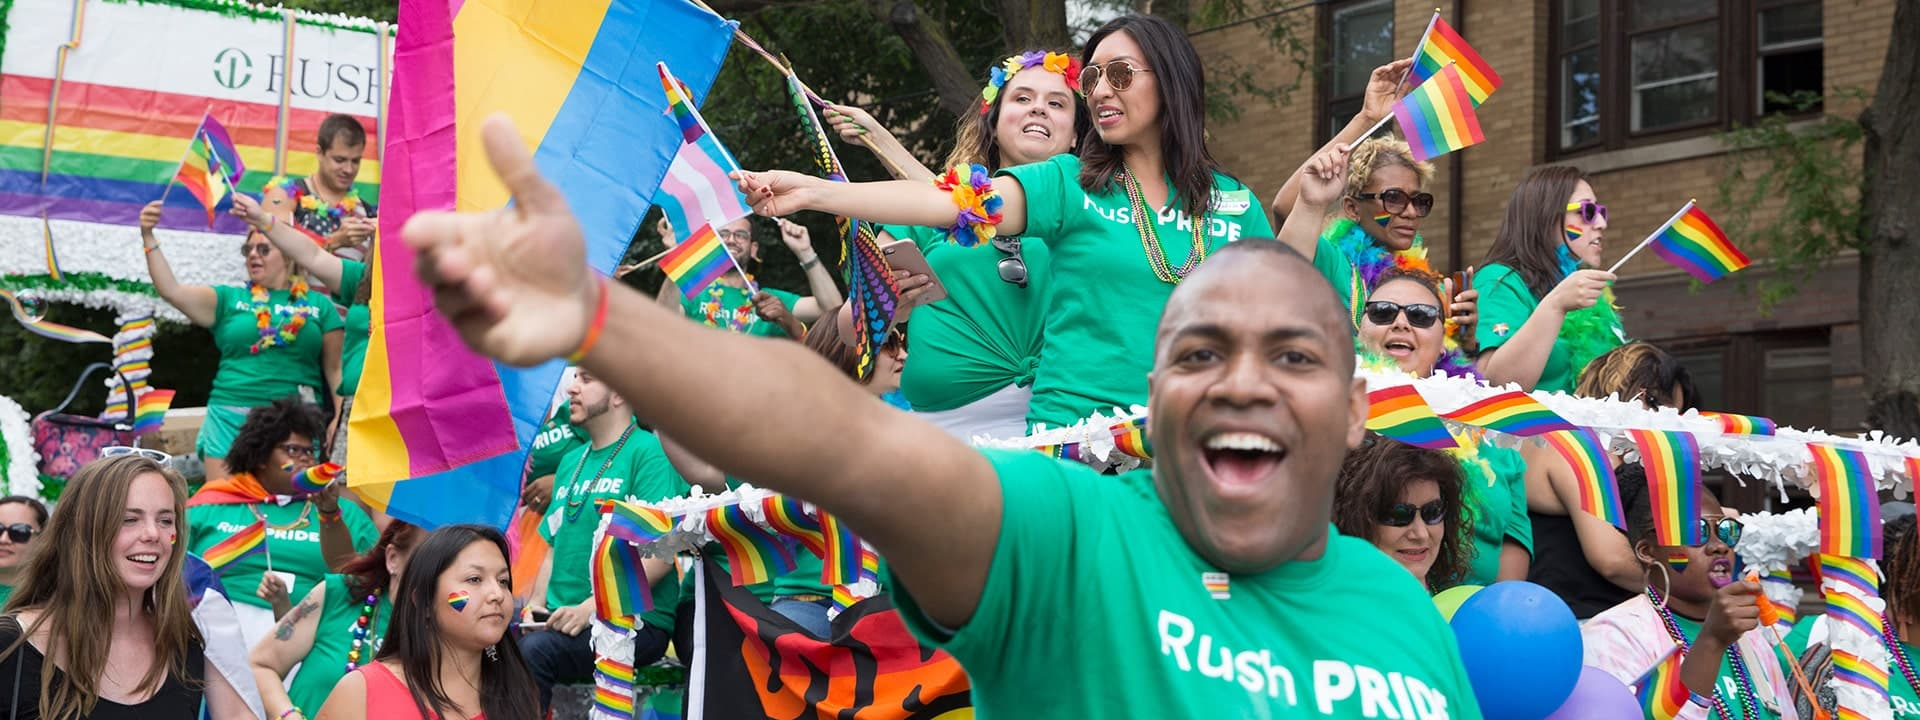 Rush students, staff and faculty at a Pride parade